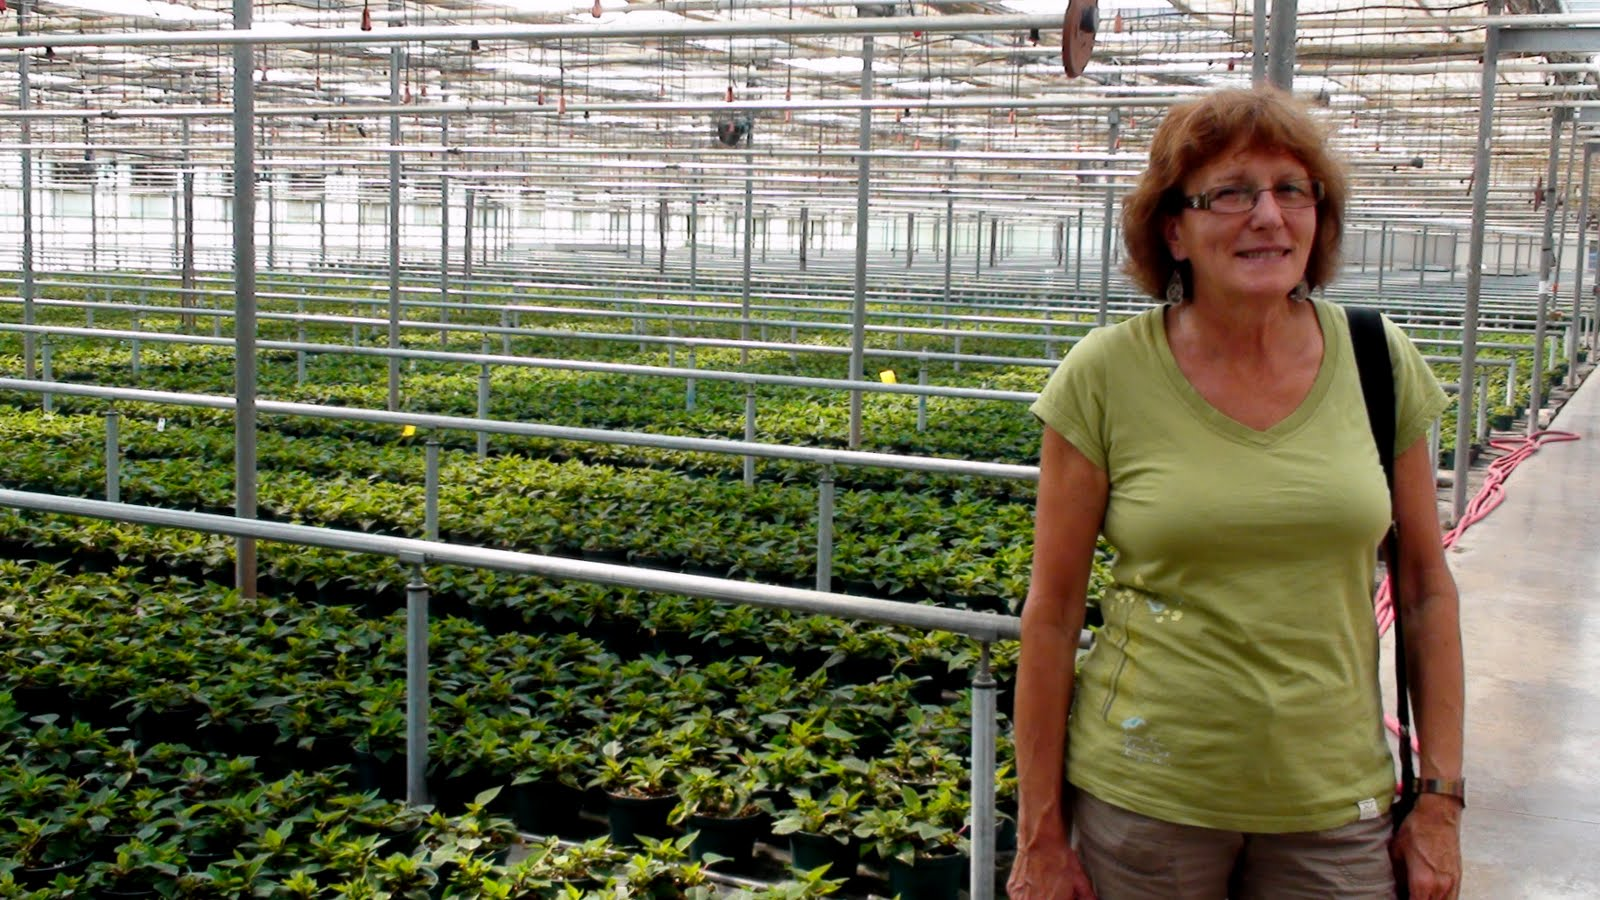 Liz amazed at all acres and acres of green houses.